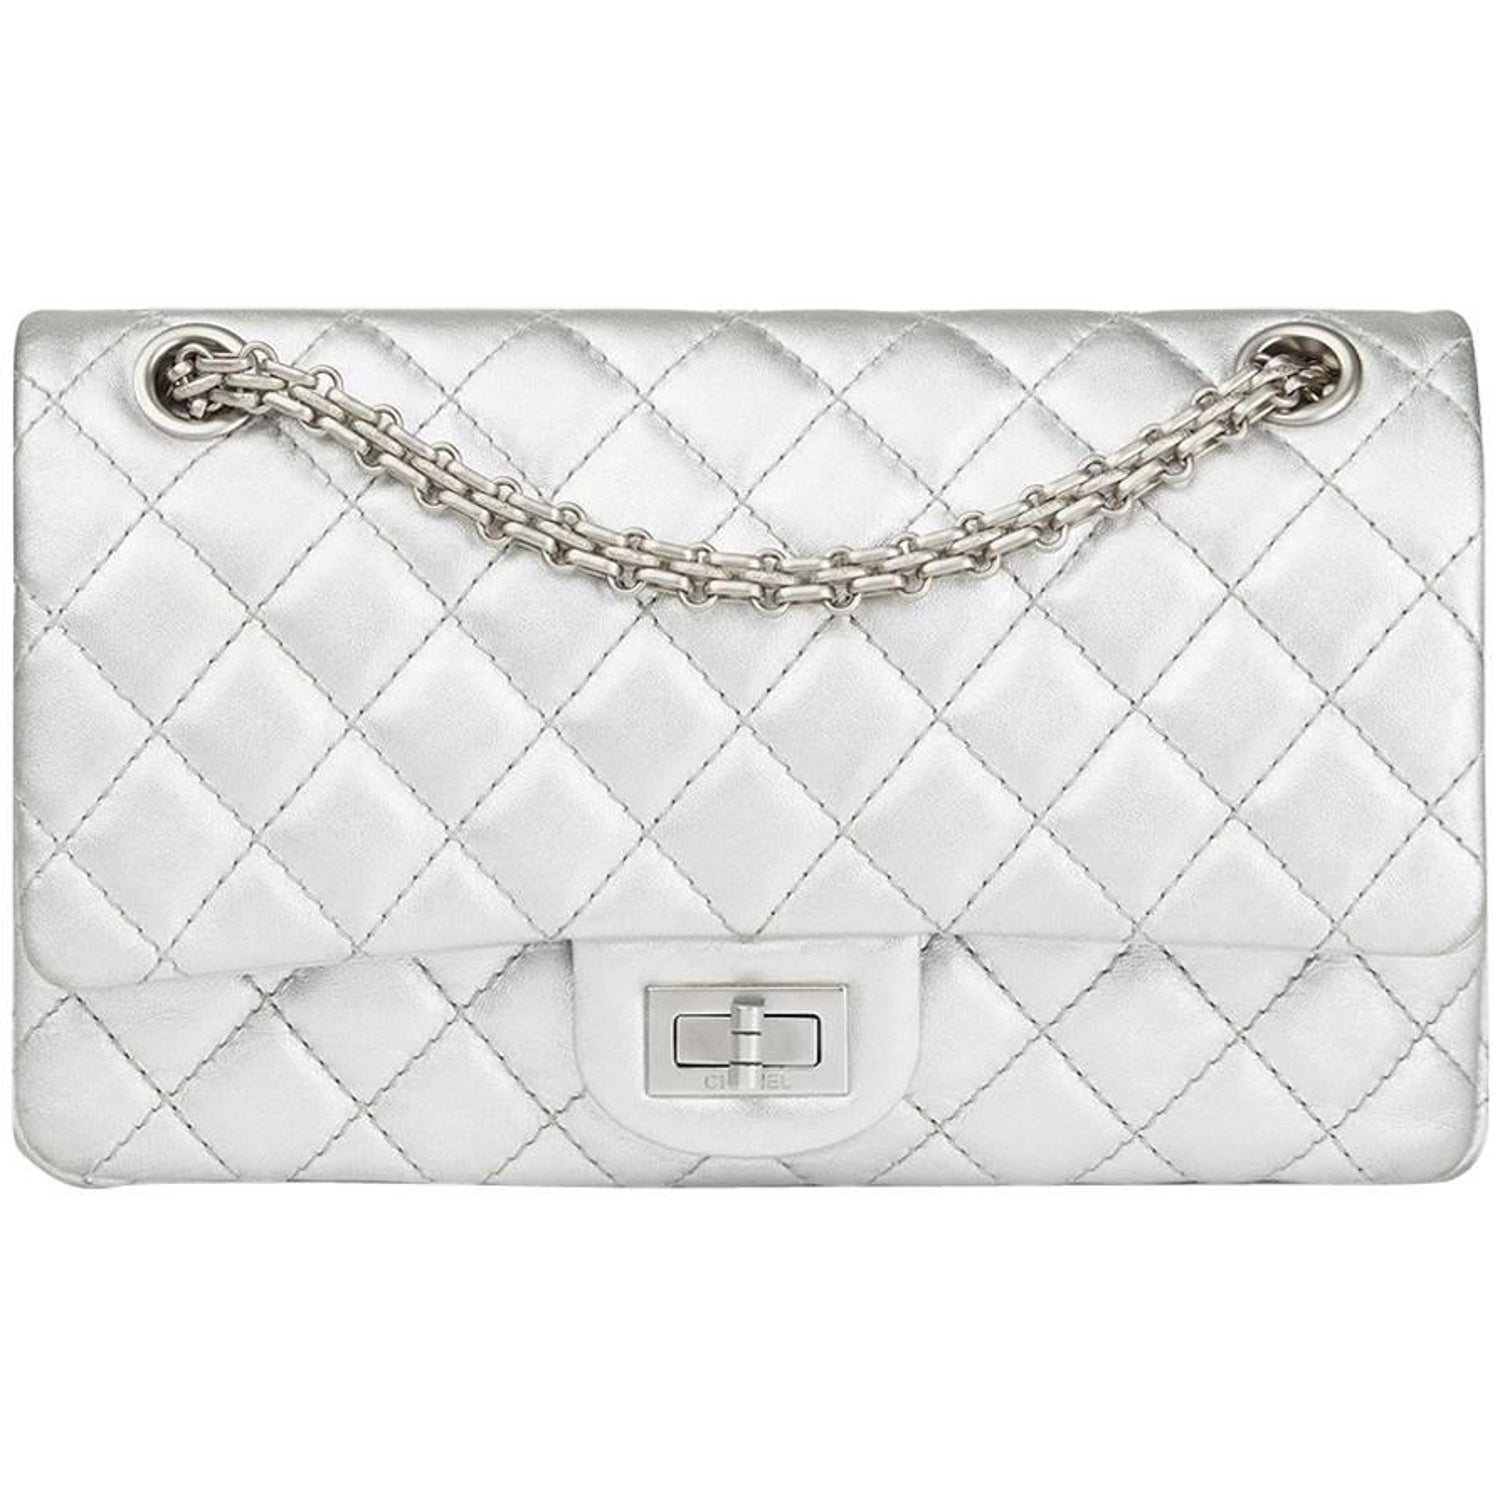 57d9bd4abdd8 Chanel Silver Quilted Metallic Lambskin 2.55 Reissue 225 Double Flap Bag,  2009 at 1stdibs